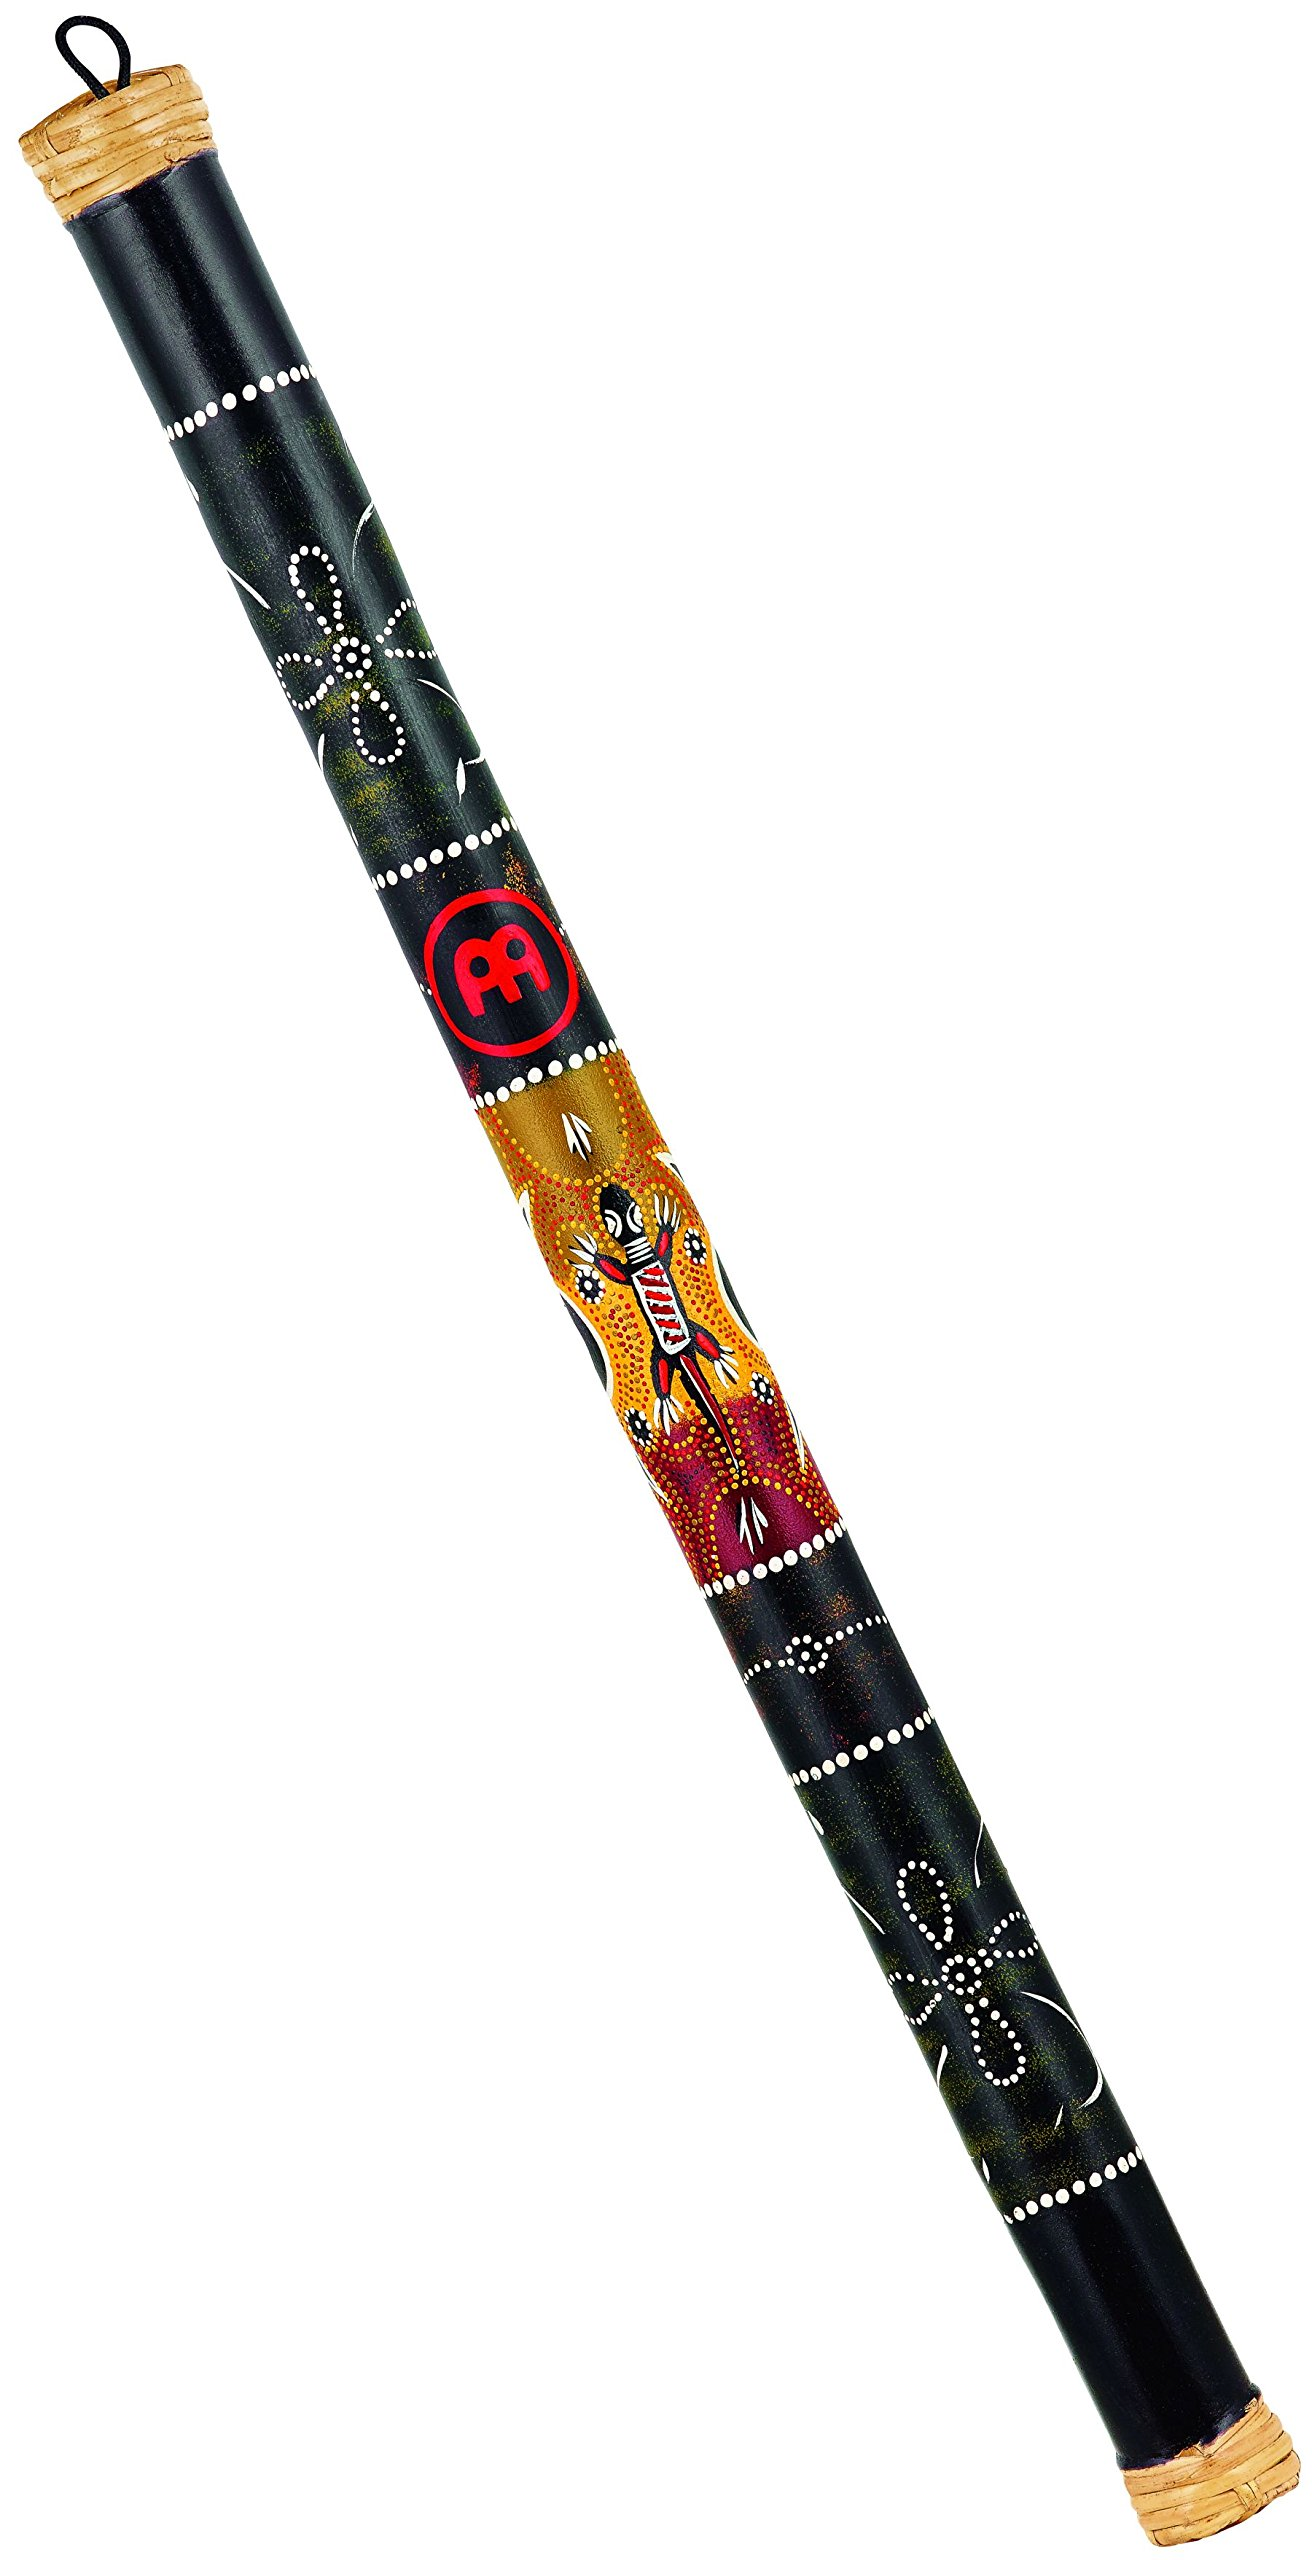 Meinl Percussion RS1BK-M/L 31.5'' Med/Large Bamboo Rain Stick with Sustaining Trickle Effect and Hand Painted Design by Meinl Percussion